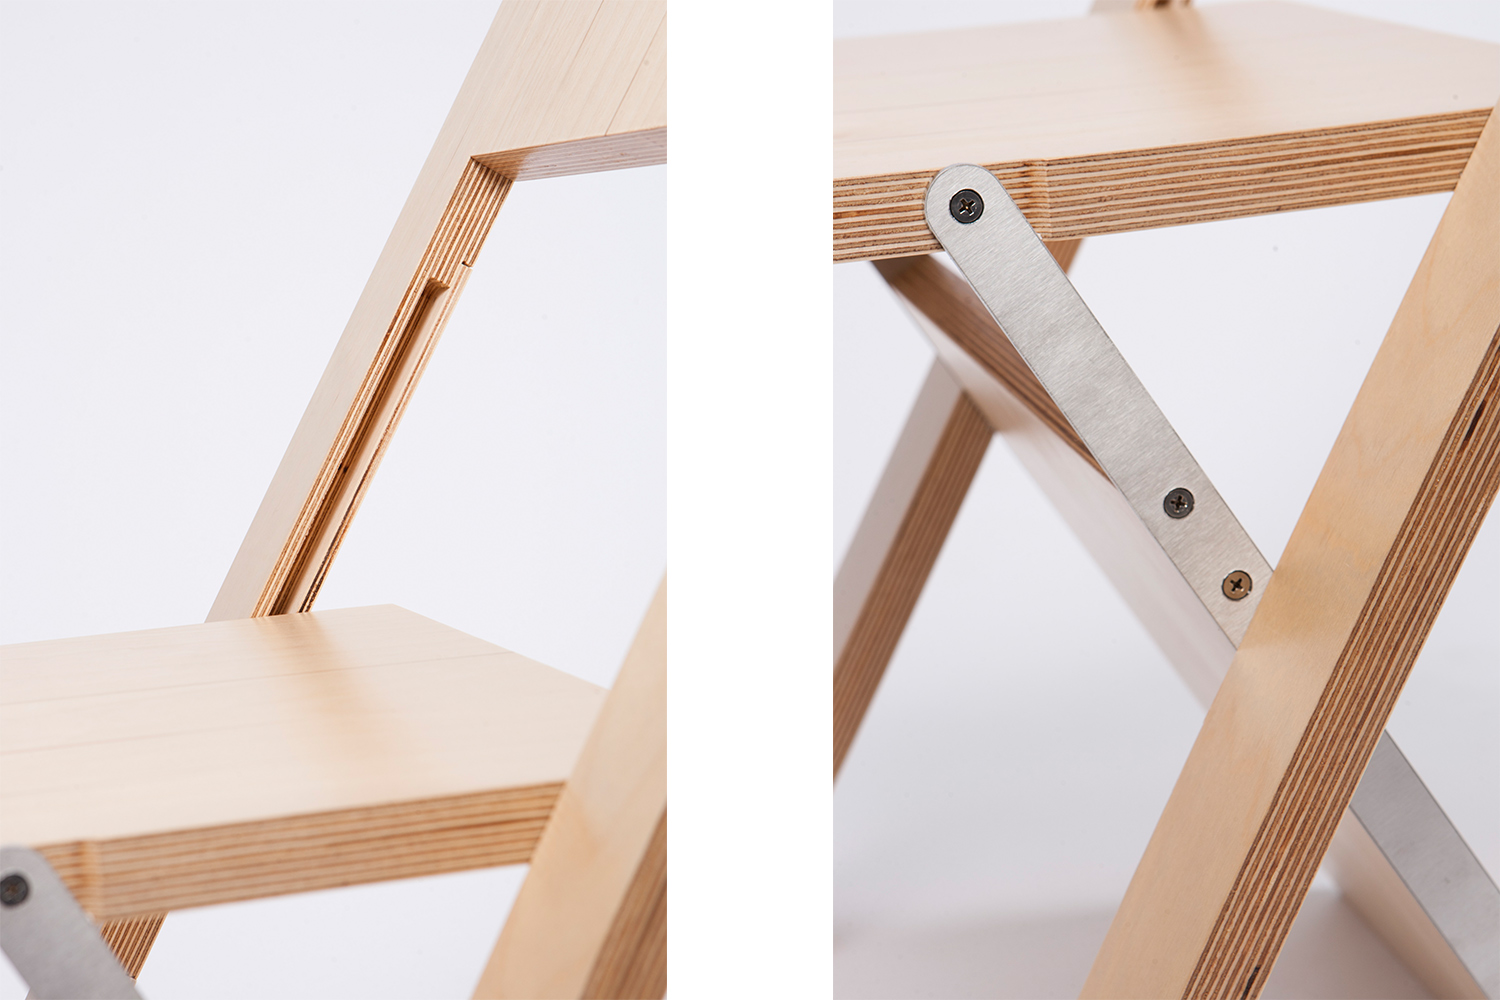 Detail of the folding chair in Russian cherry and stainless steel. It is only one inch when folded.